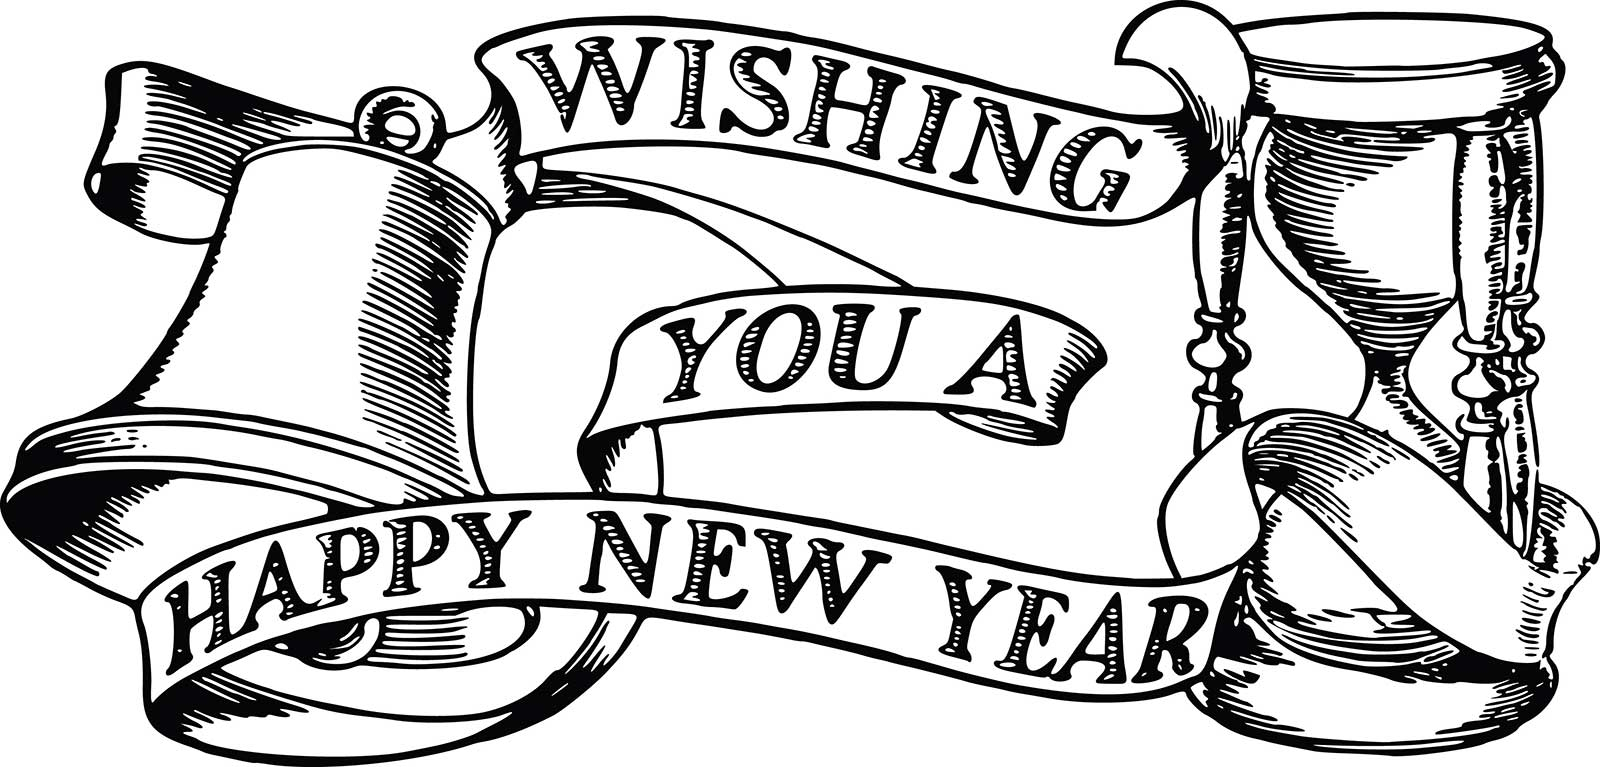 Free clipart happy new year 2019 clip art royalty free library Happy New Year 2019 Clipart to printable – Free Clipart Images clip art royalty free library